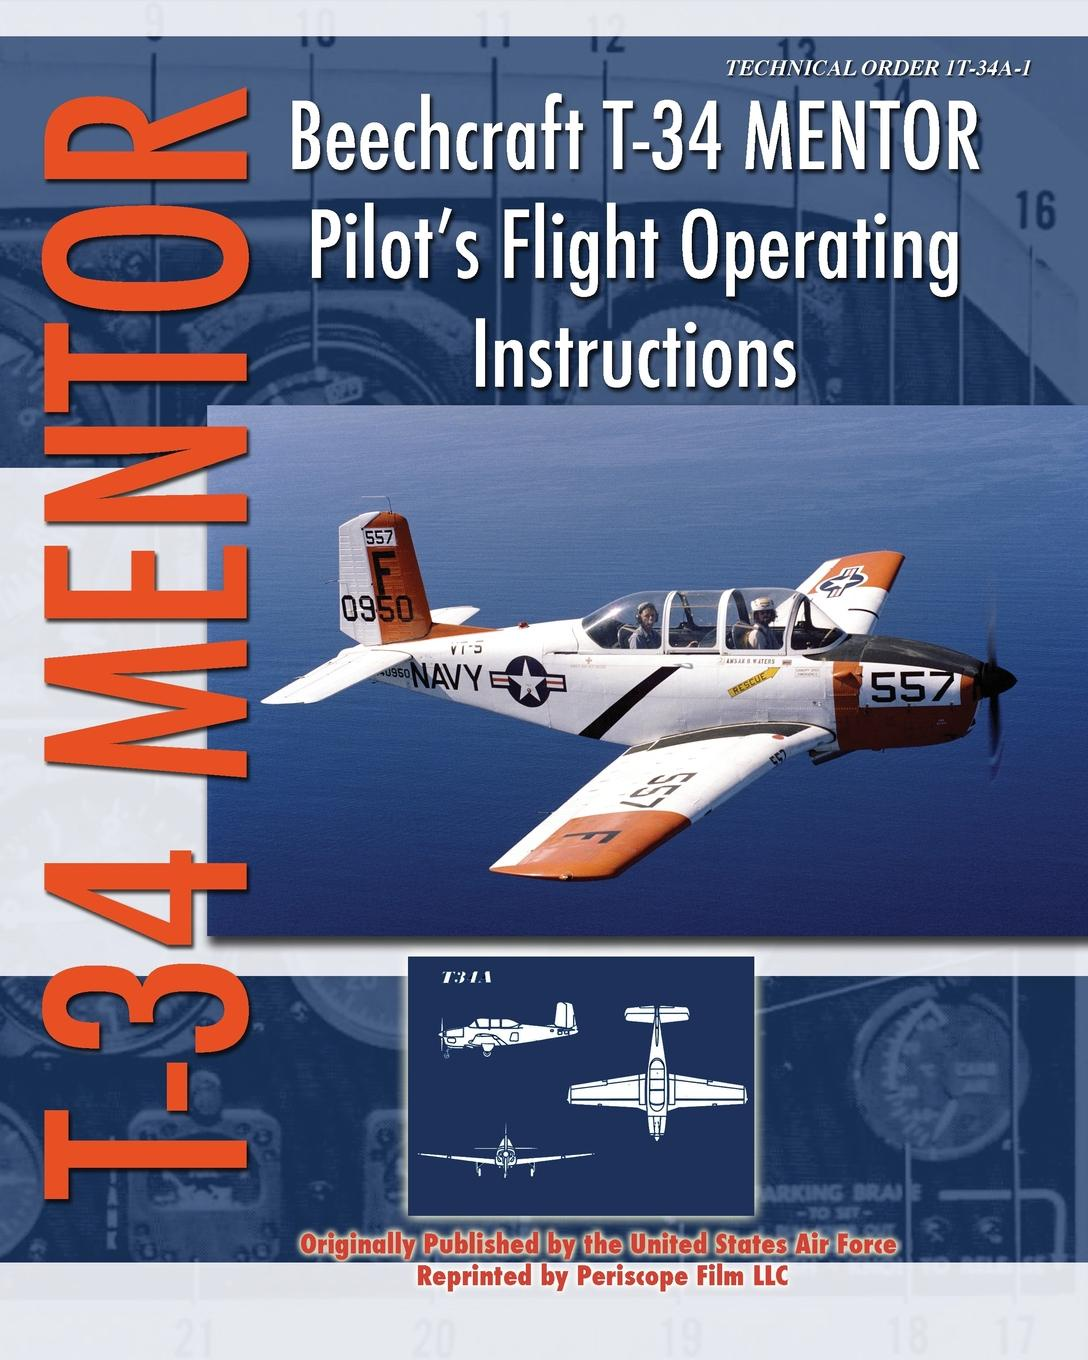 United States Air Force Beechcraft T-34 Mentor Pilots Flight Operating Instructions